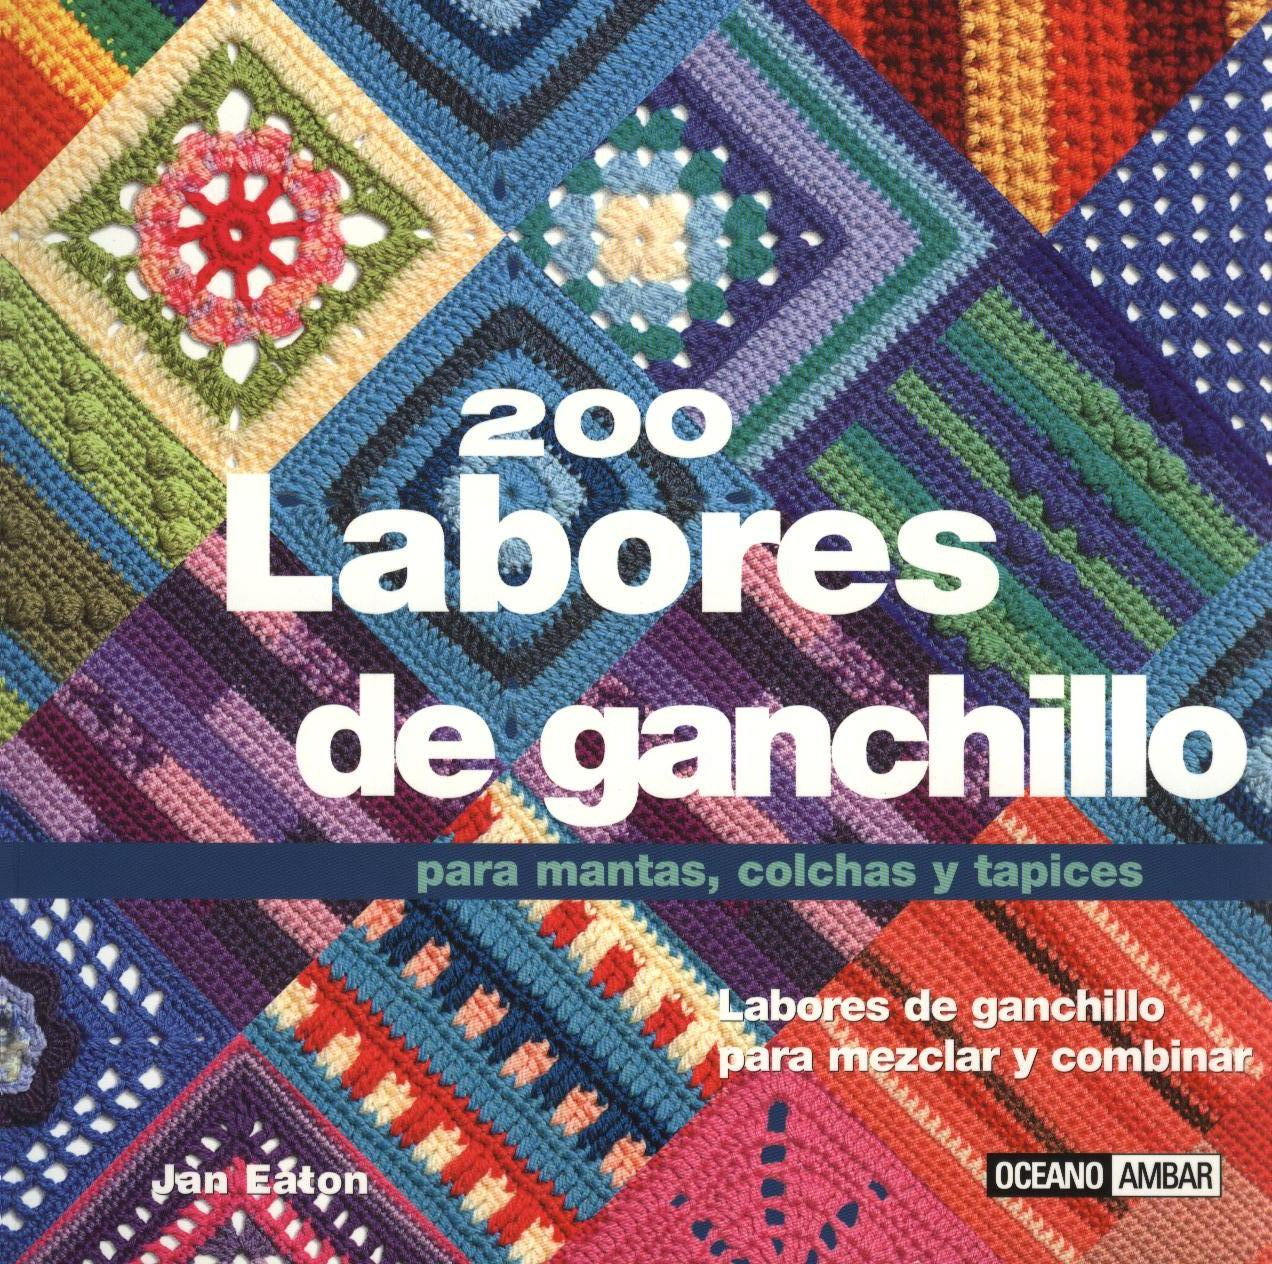 200 labores de ganchillo para mantas, colchas y tapices